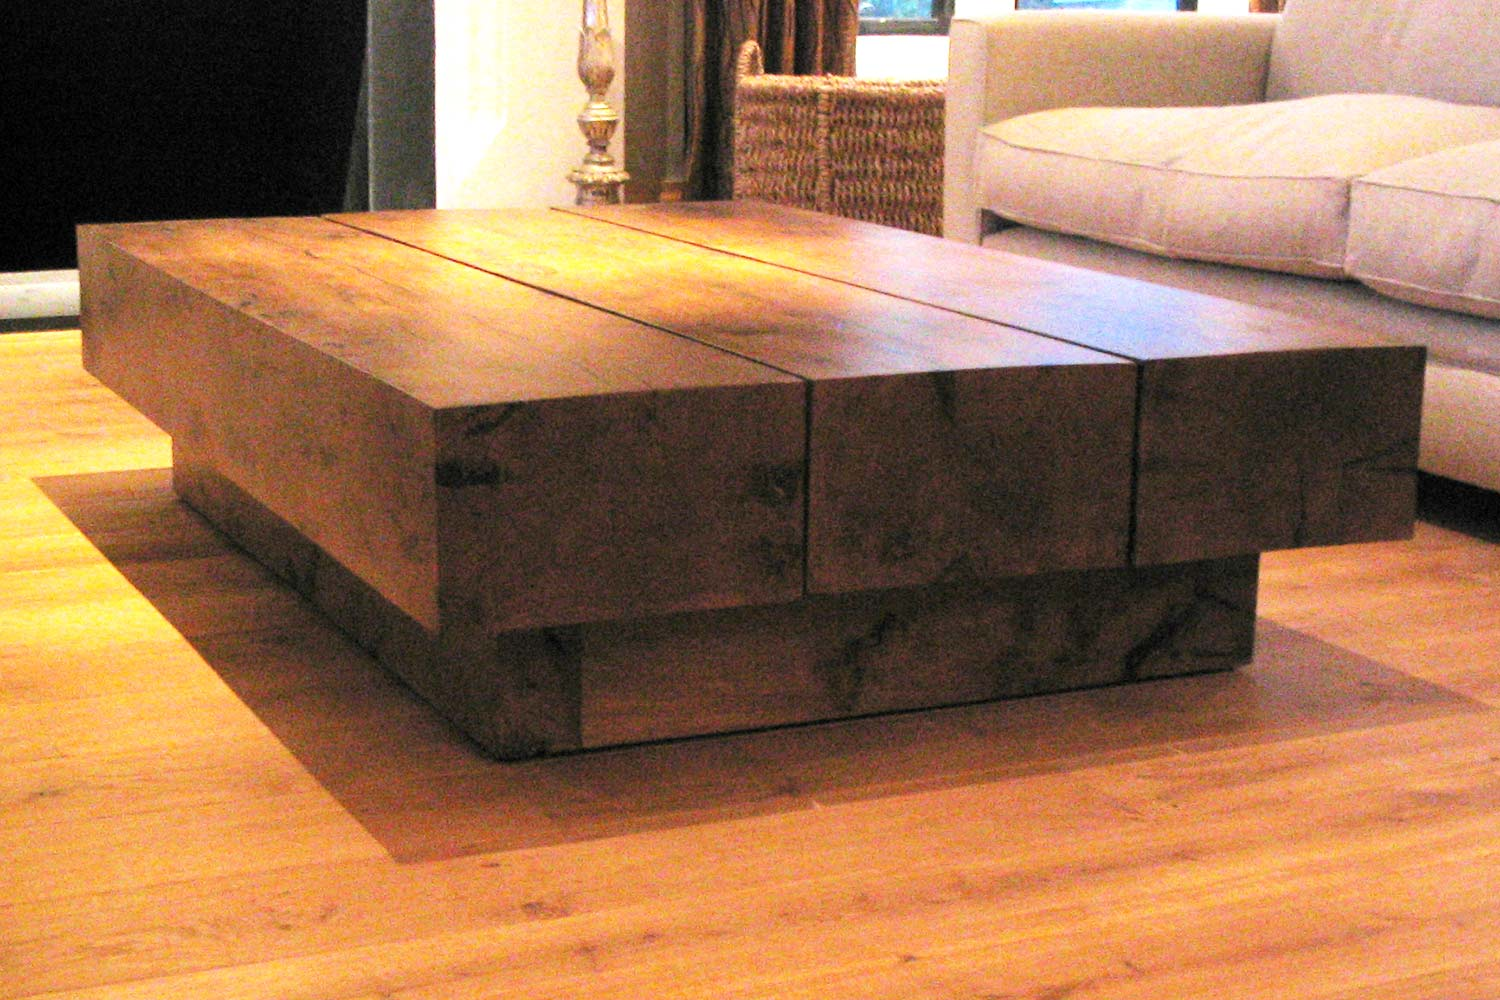 BEAM COFFEE TABLE Ross Langley Bespoke Furniture and Joinery : beamtablecrop from rosslangley.com size 1500 x 1000 jpeg 200kB